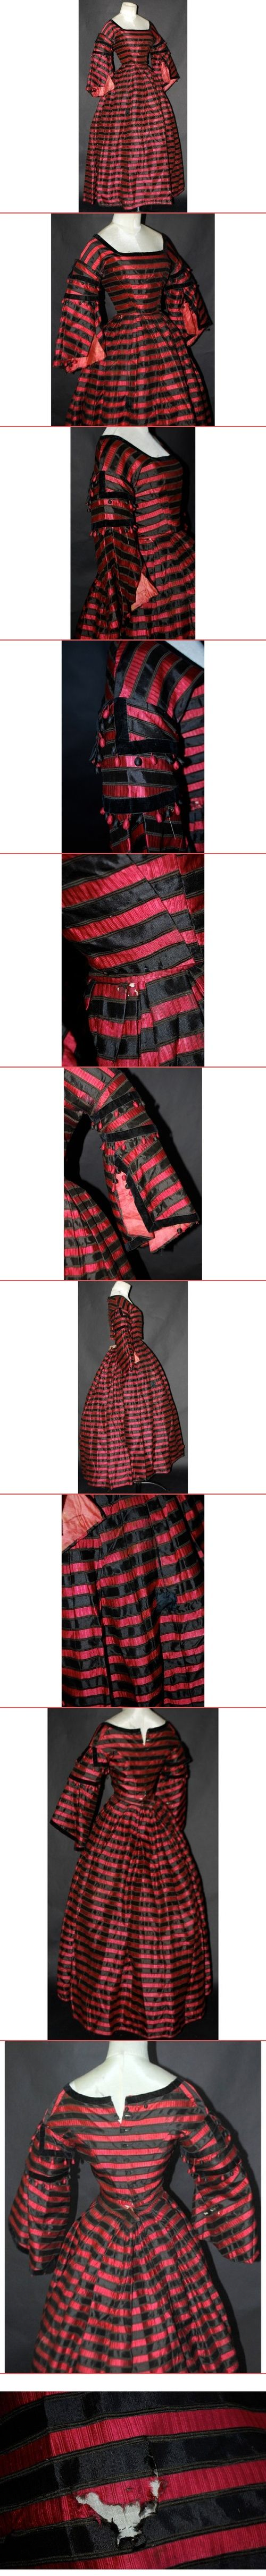 1860s dress, 2 pc construction. The fabric is a red stripe textured silk with black silk satin stripes. The bodice closes in the rear, trimmed in buttons, several are missing.  The skirt is cartridge pleated in rear, layered box pleats in the front, falli - created via http://pinthemall.net